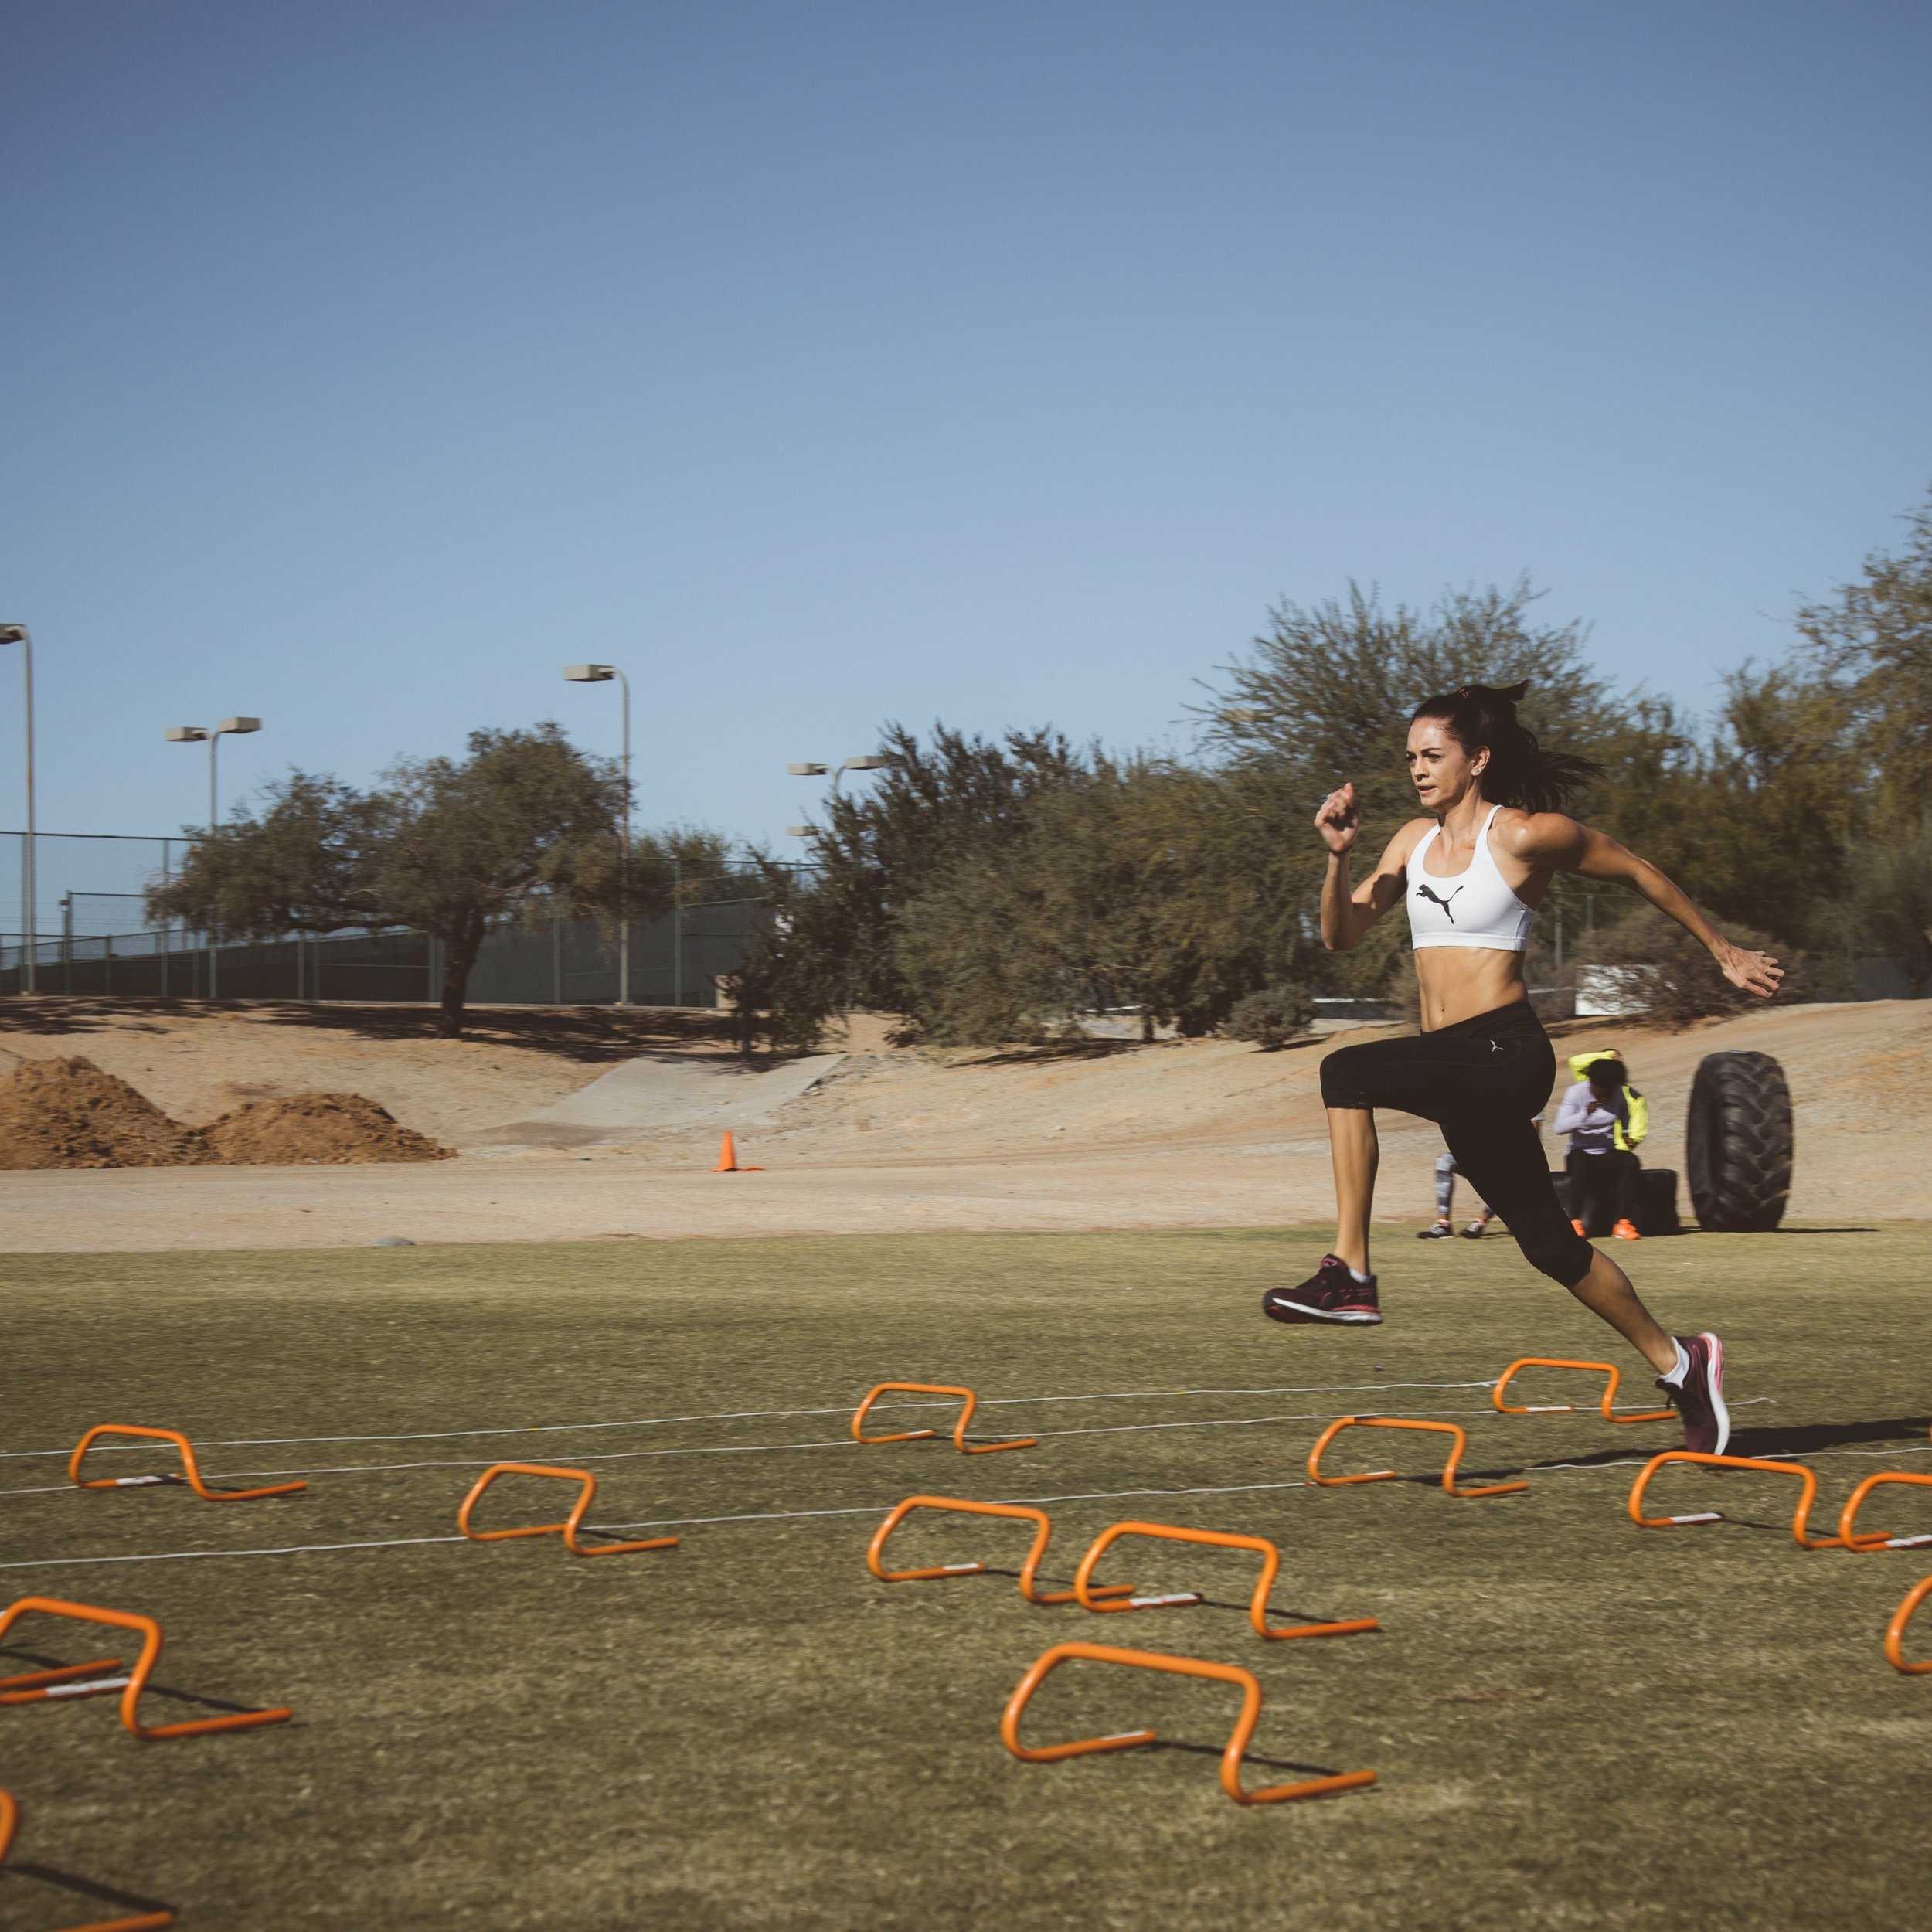 Your Achilles is your spring - get it back! (photo courtesy @justynwarner